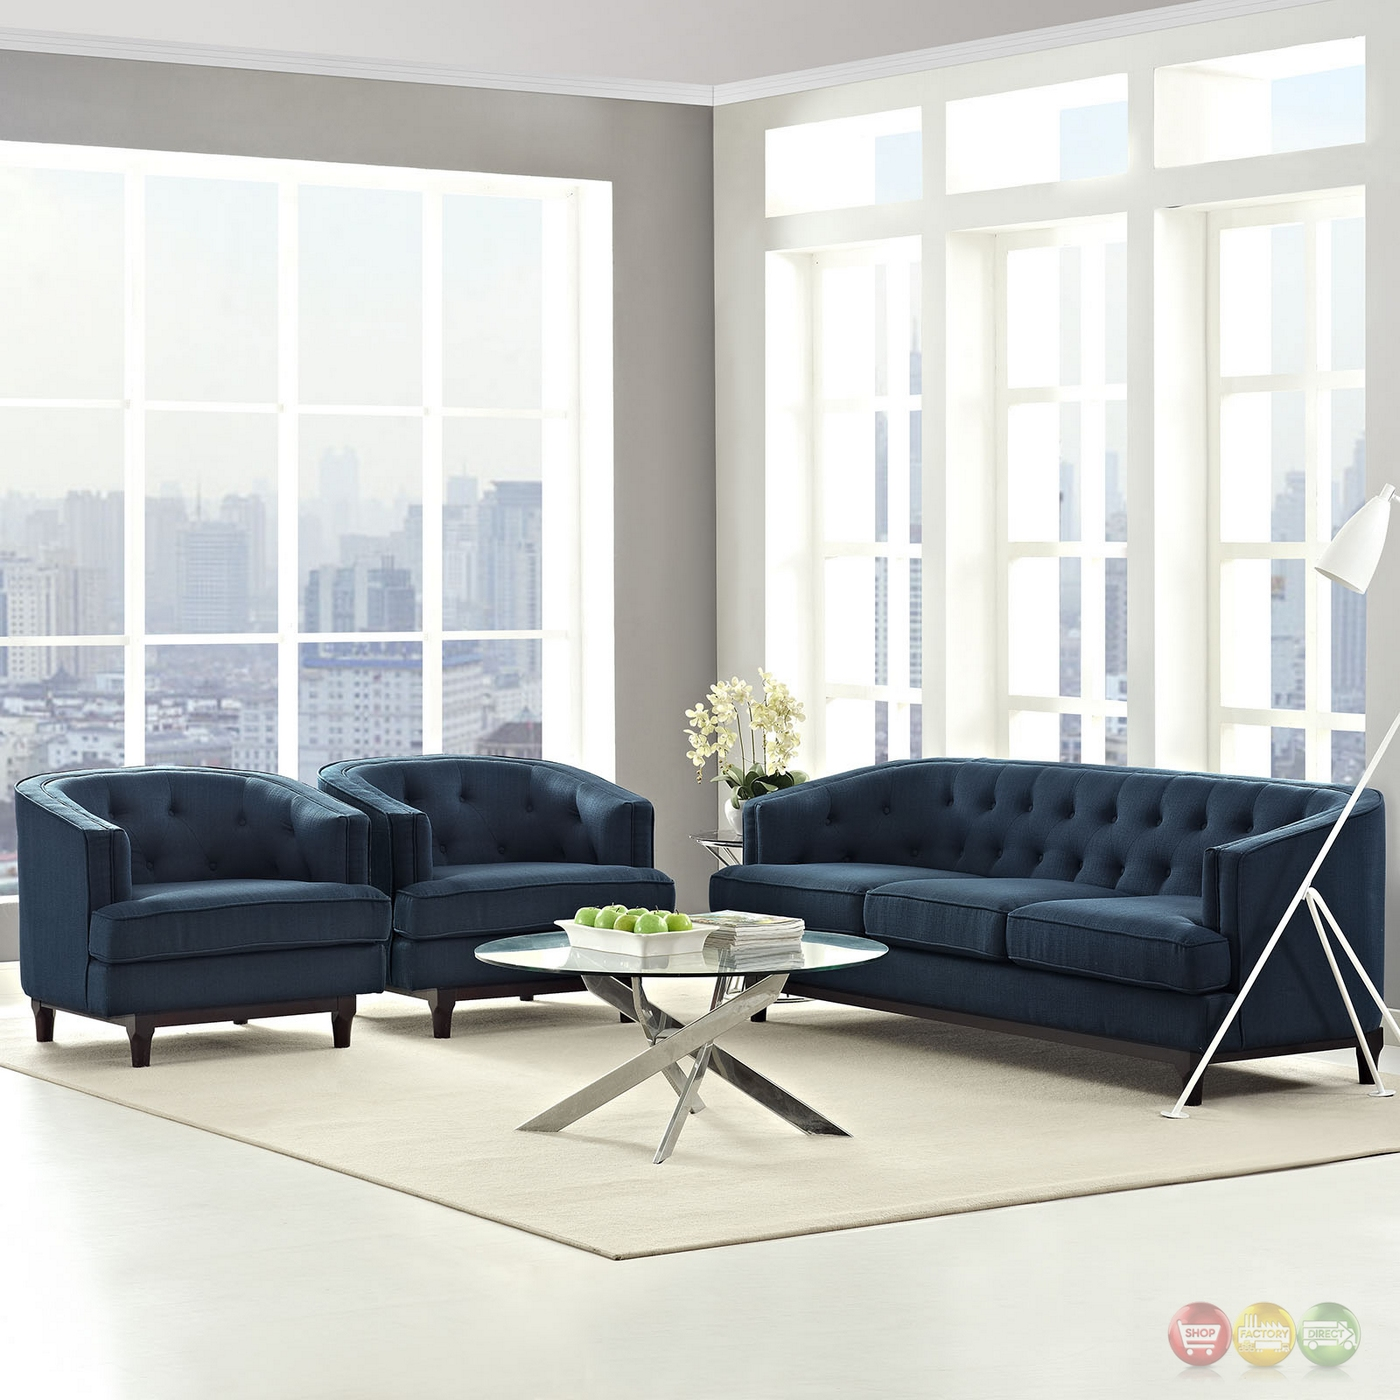 Coast Modern 3 Pc Upholstered Sofa Armchairs Living Room Set Azure